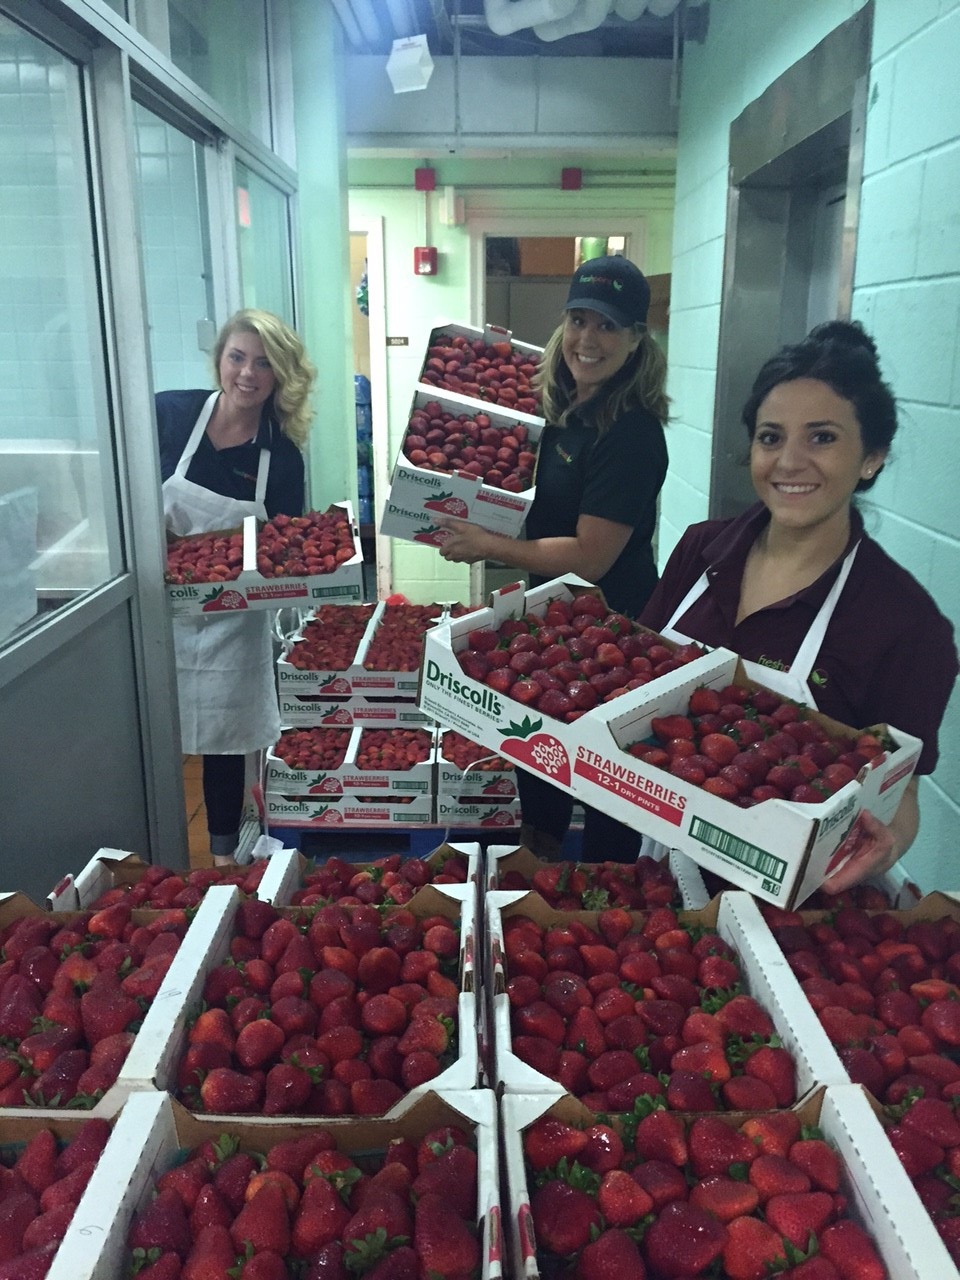 Freshpoint Sales reps washing berries from left to right – Daeghan Hawke, Jessi Daschner, Antonina Castagnola